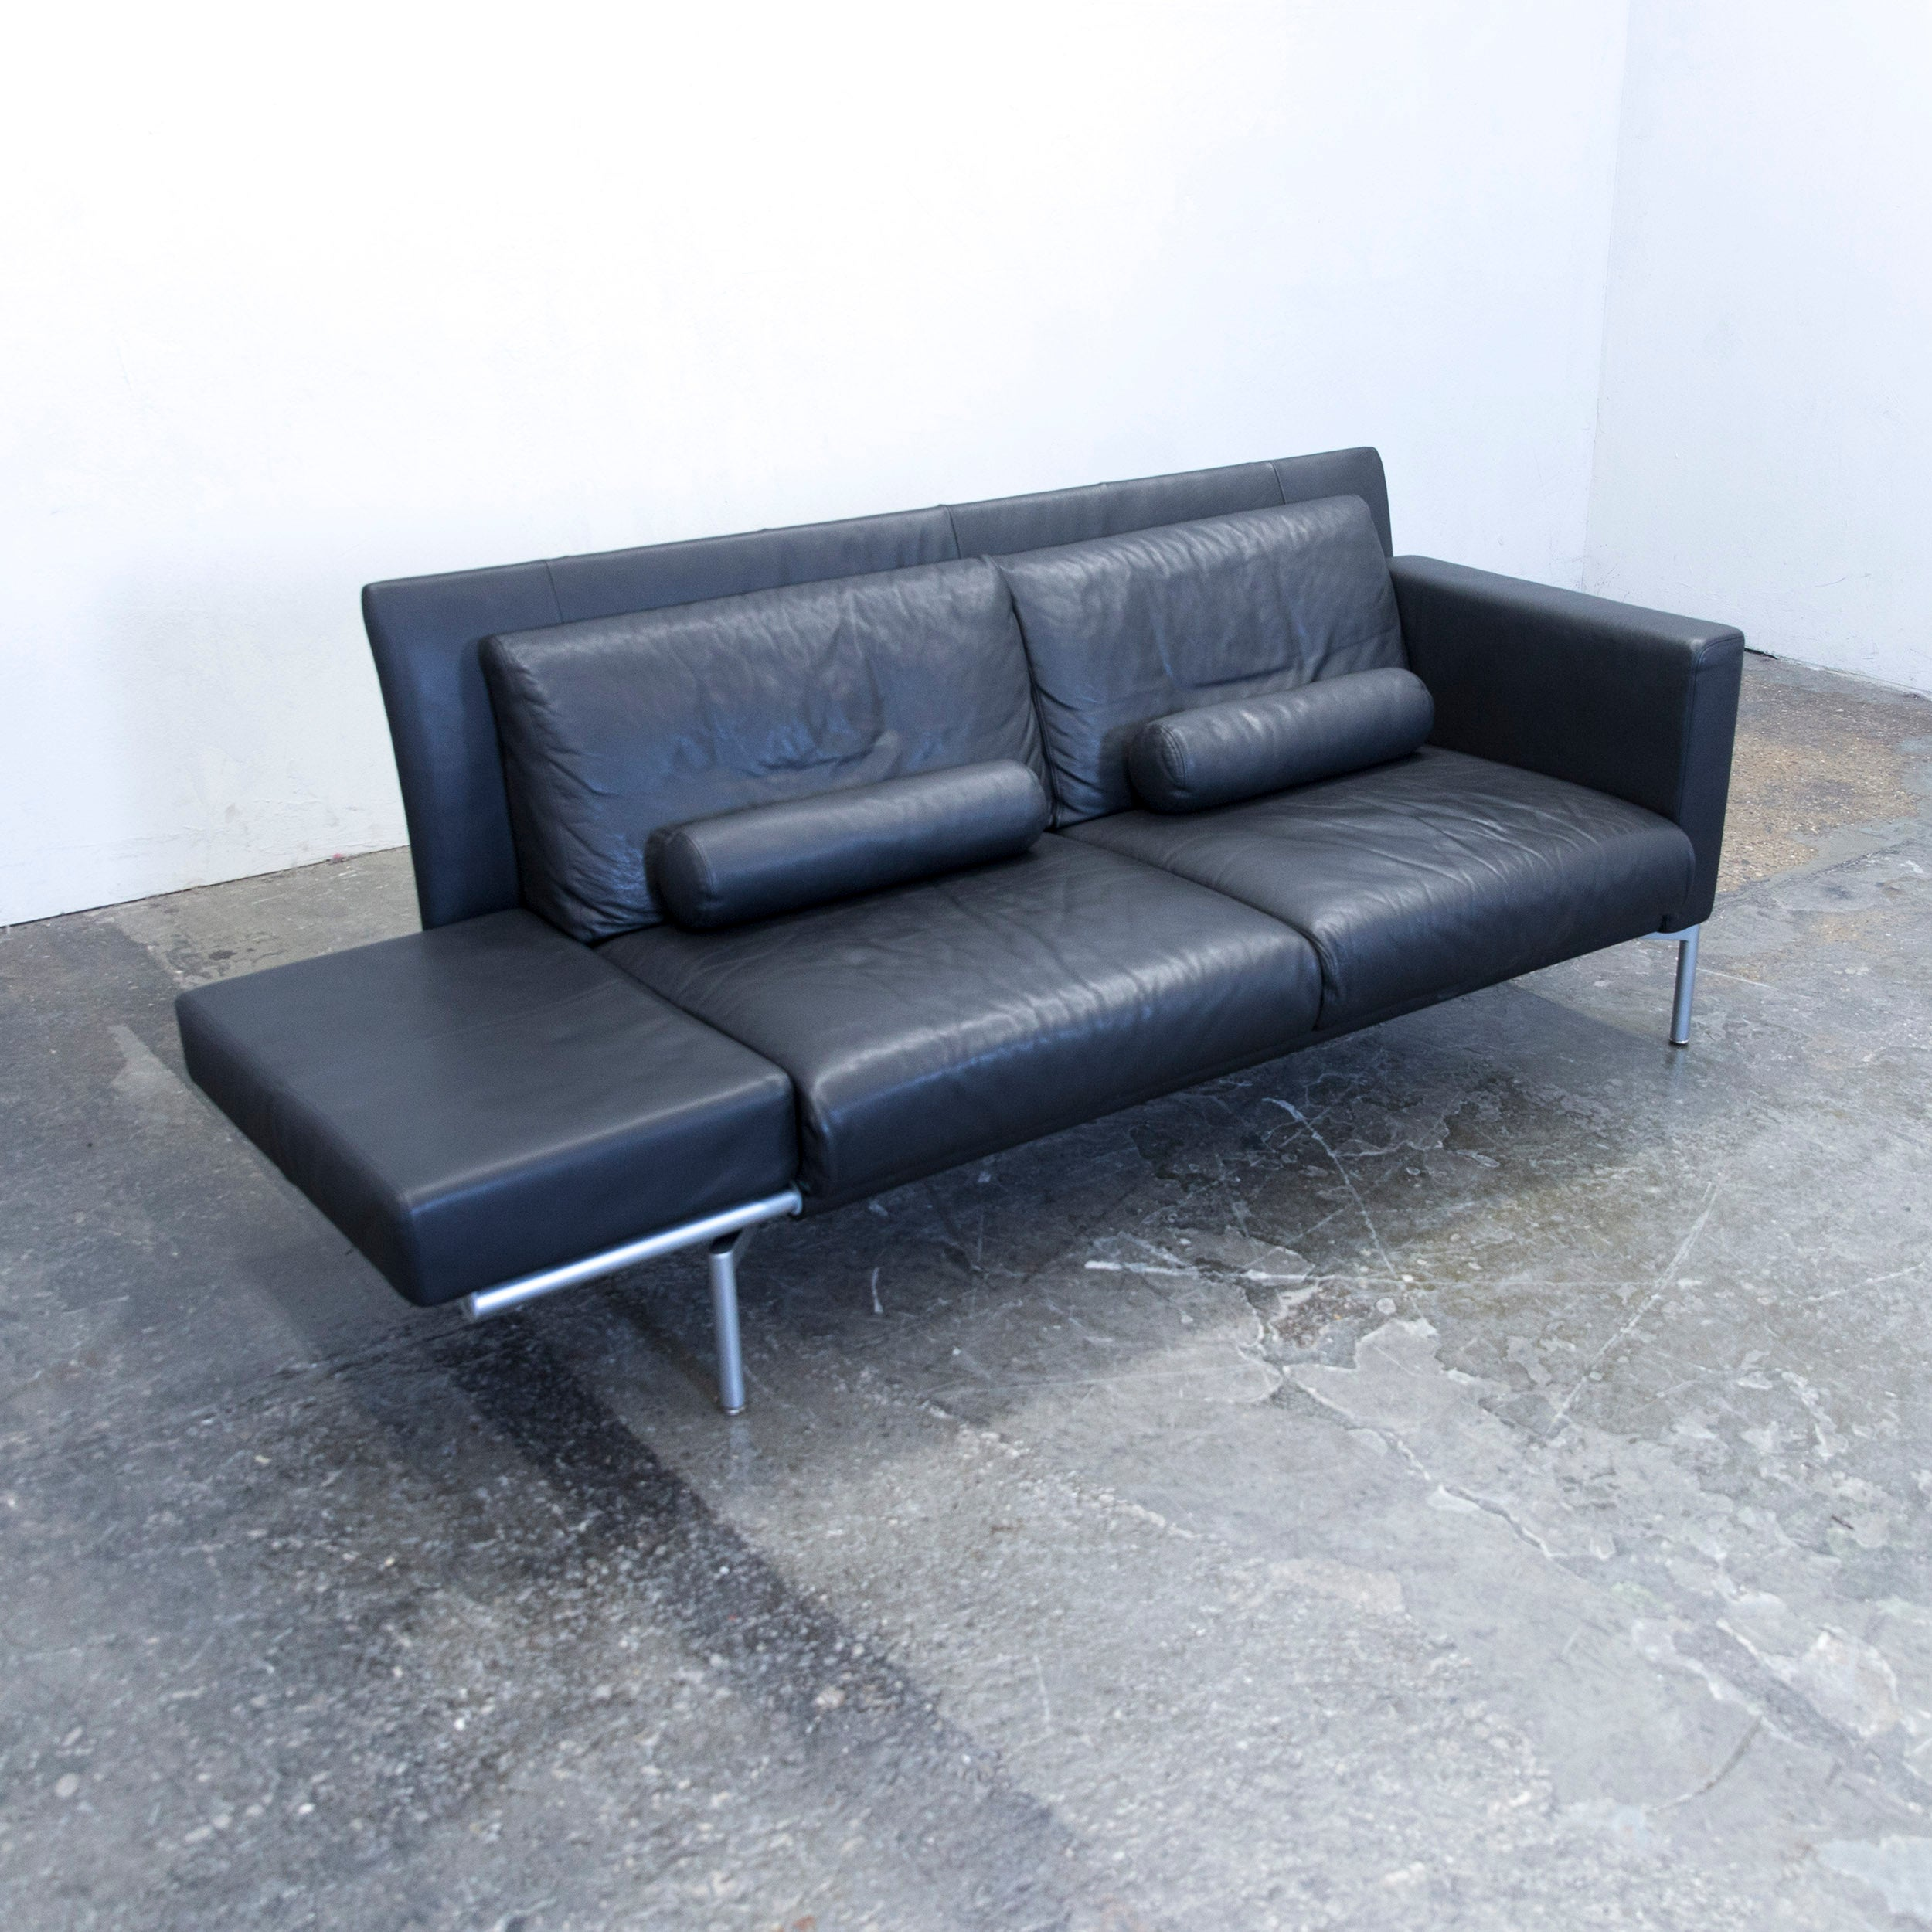 Walter Knoll Sofa Walter Knoll Jason Designer Sofa Leather Black Two Seat Couch Modern Function